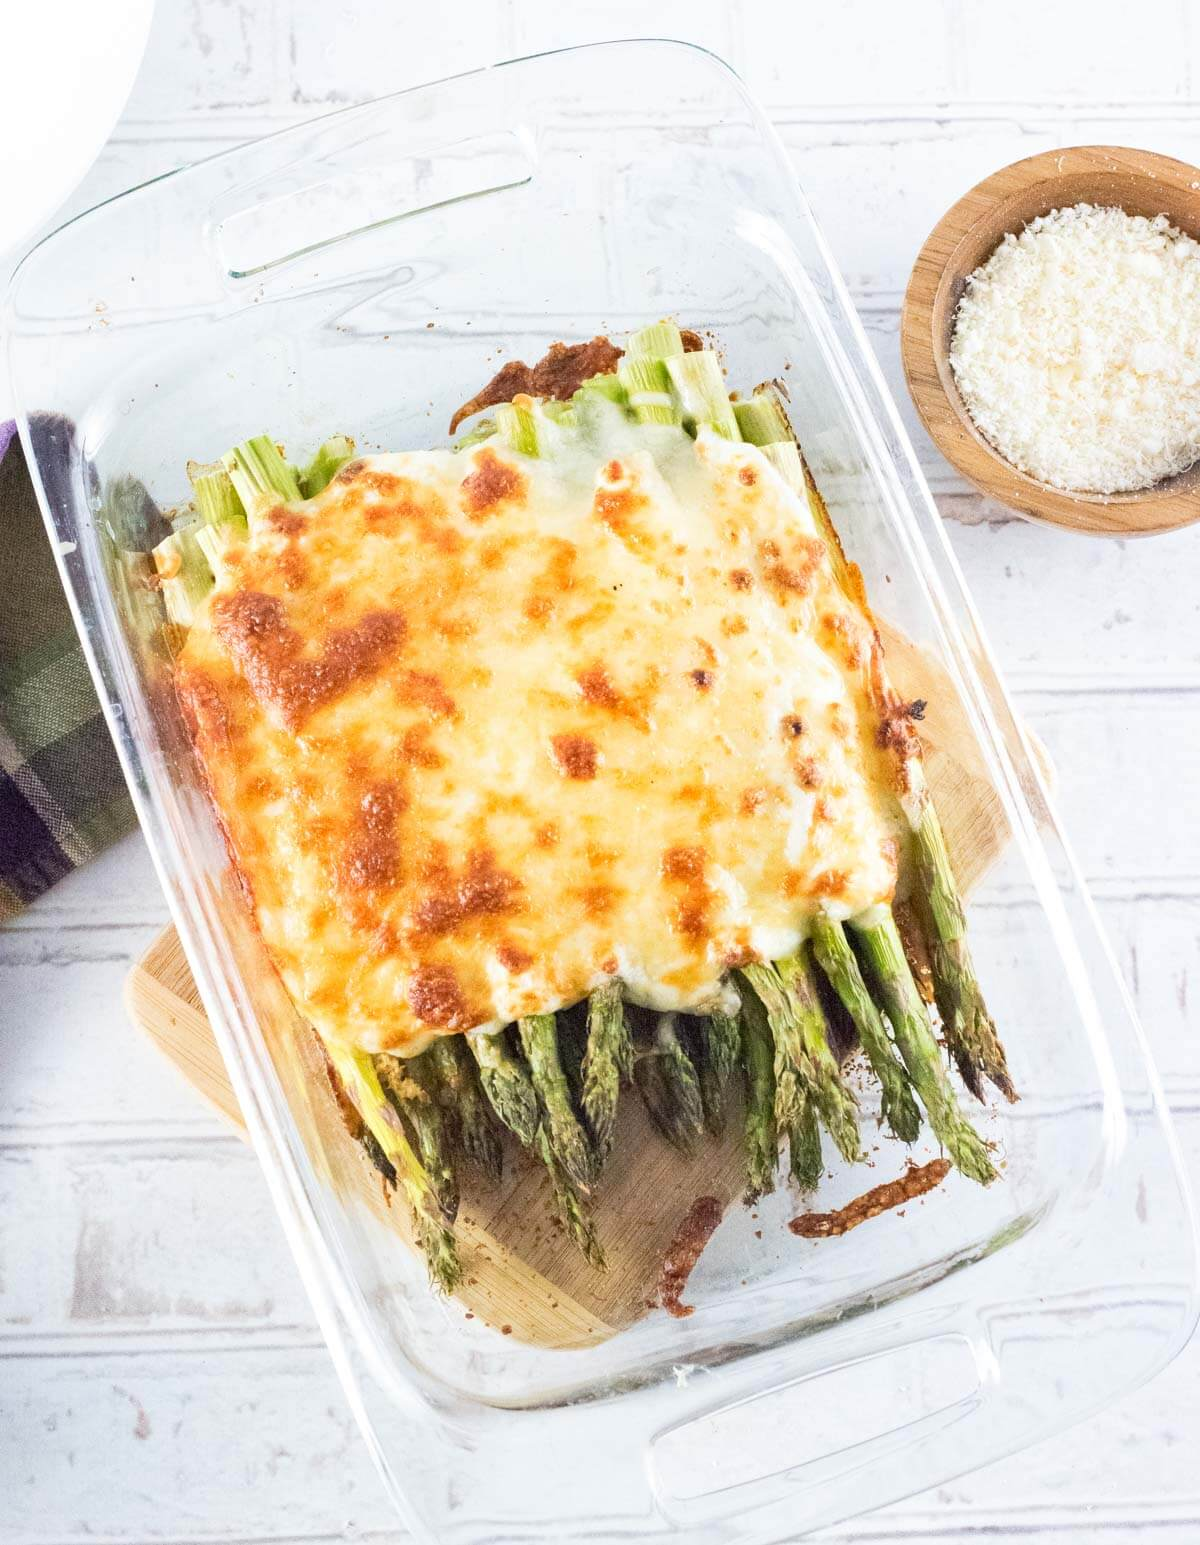 Cheesy baked asparagus viewed from above